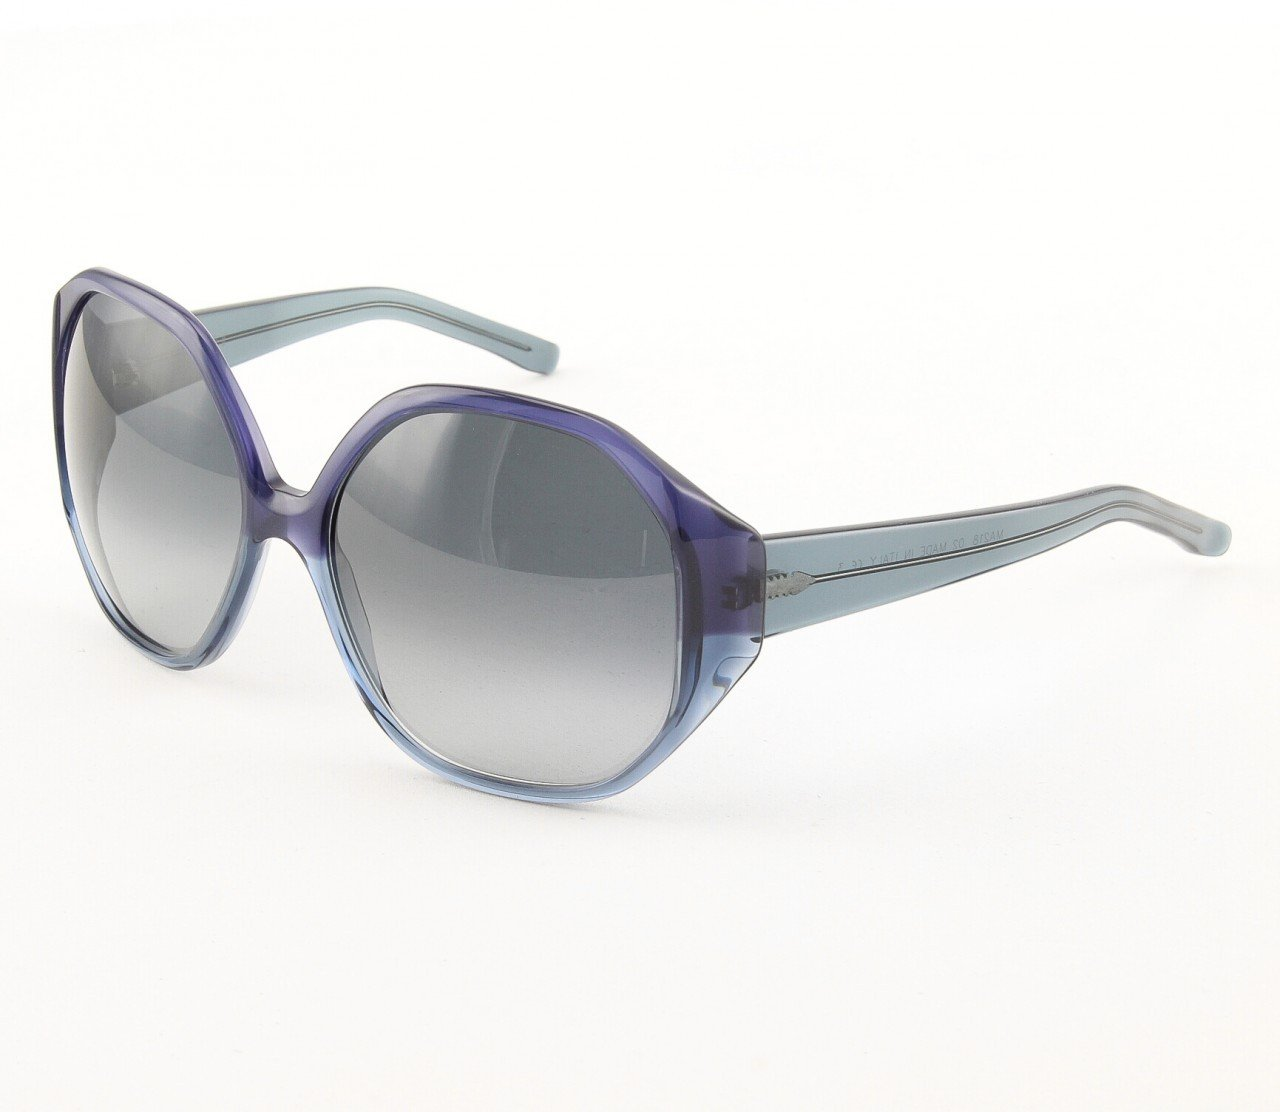 Marni MA218 Sunglasses Col. 02 Navy Blue Opaque and Crystal Frame with Gray Gradient Lenses